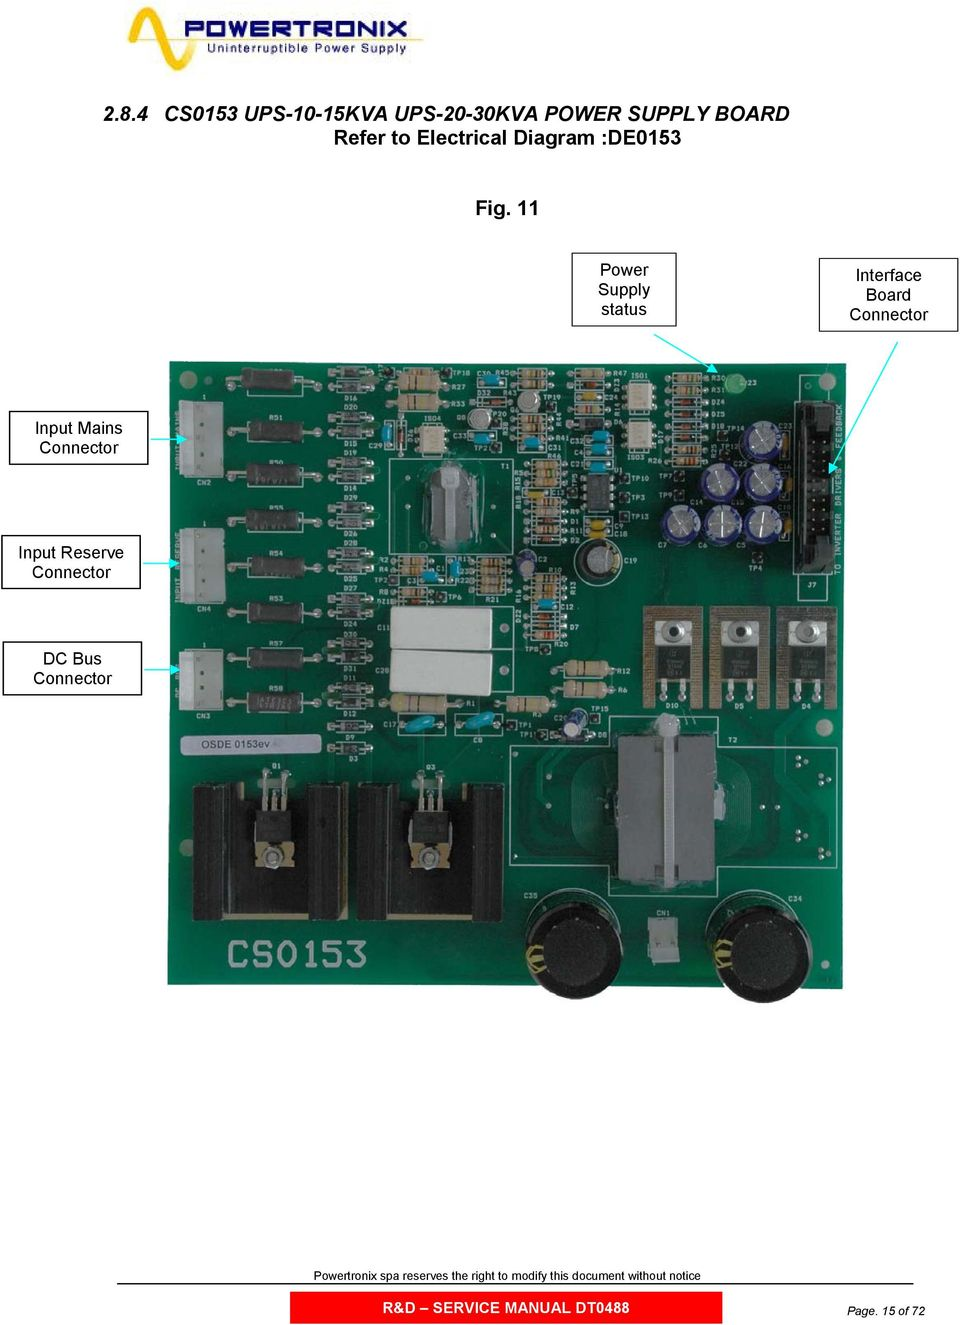 Power Supply status Interface Board Connector Input